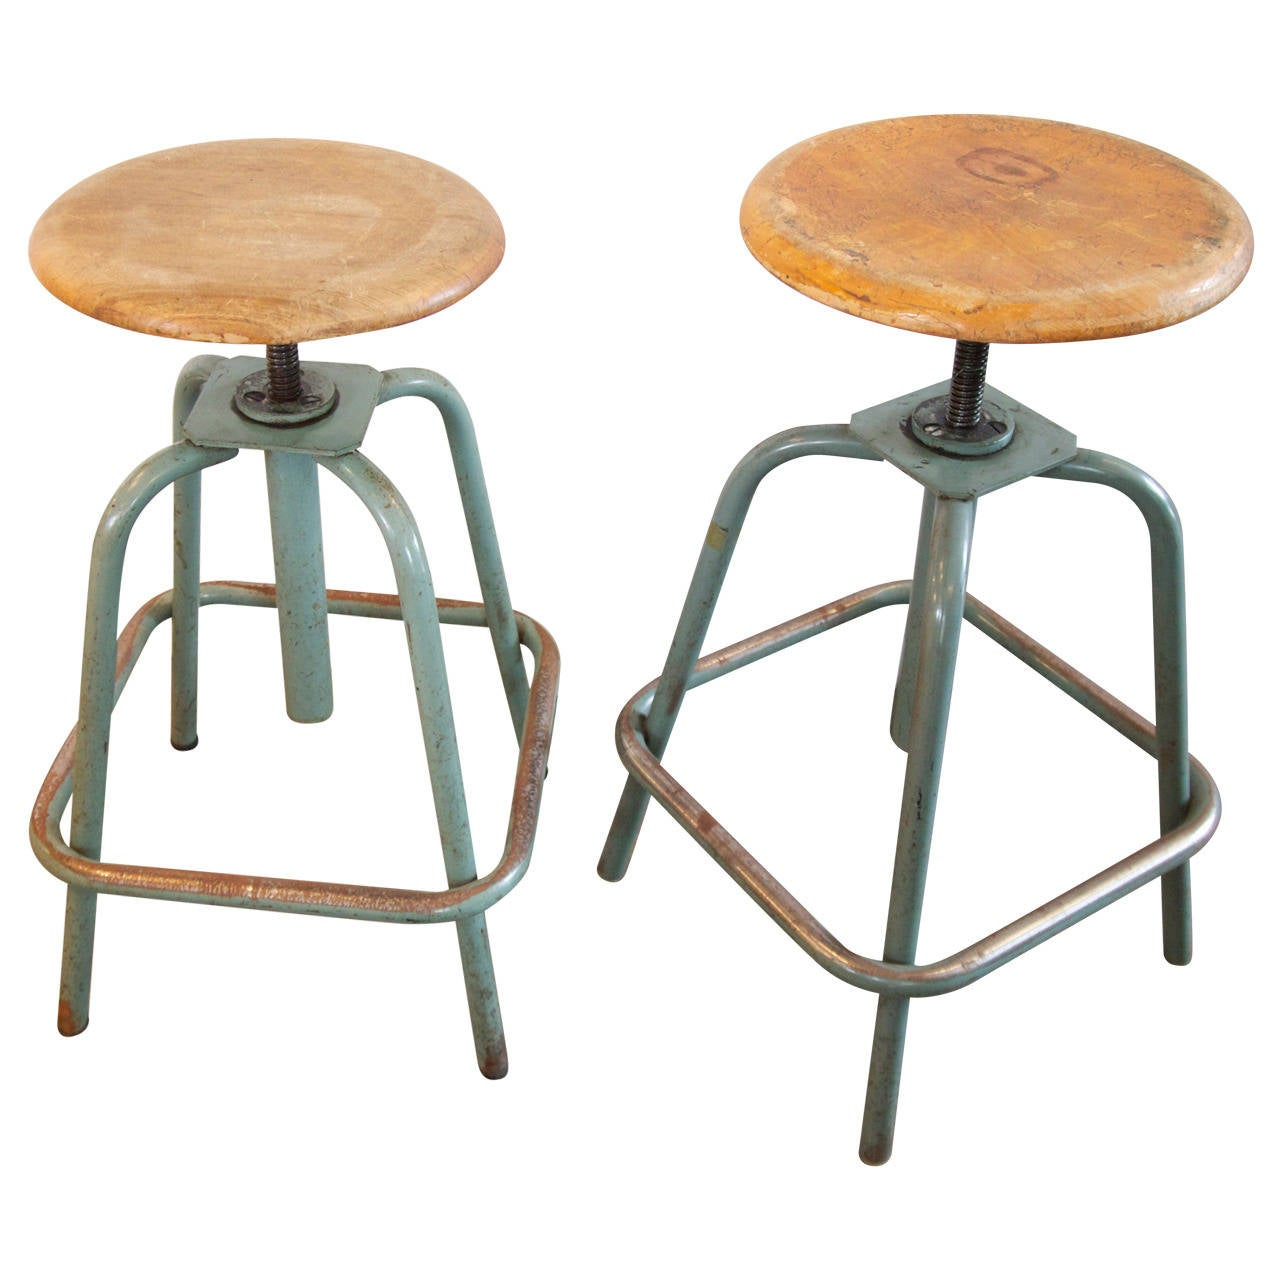 Pair of French Industrial Adjustable Stools 1